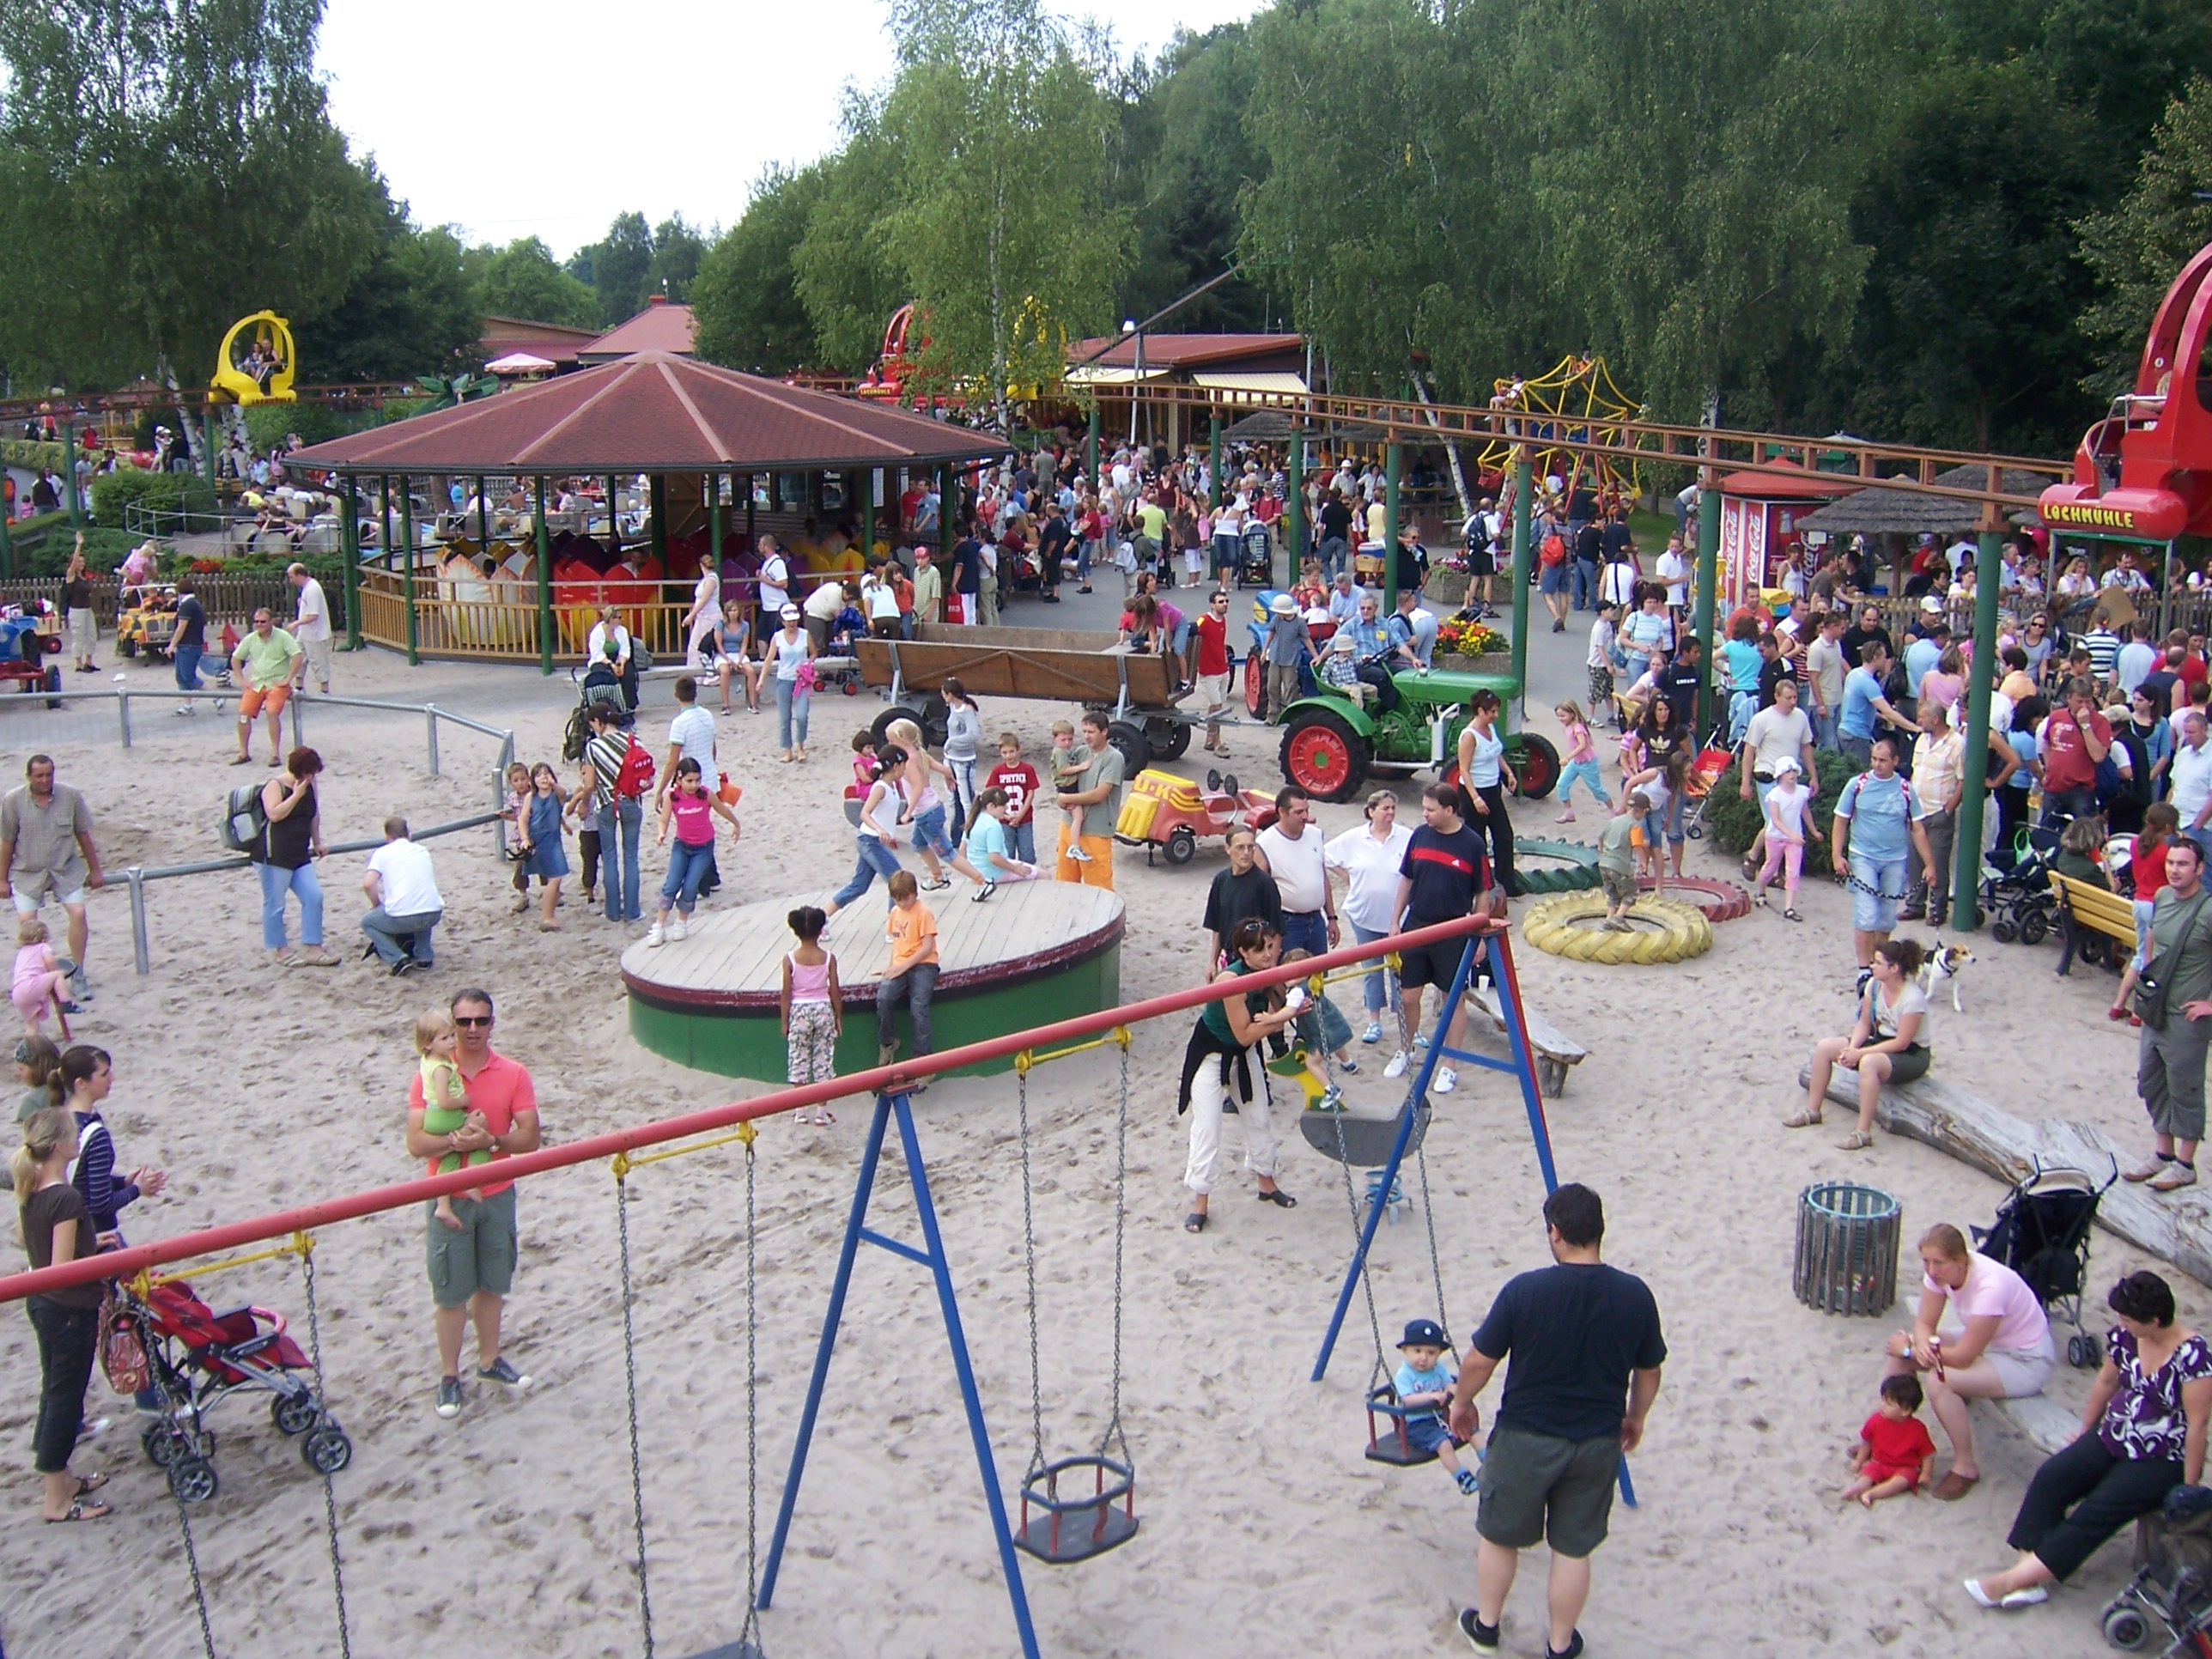 Family Fun in Themepark Lochmuehle (Usingen, Germany)